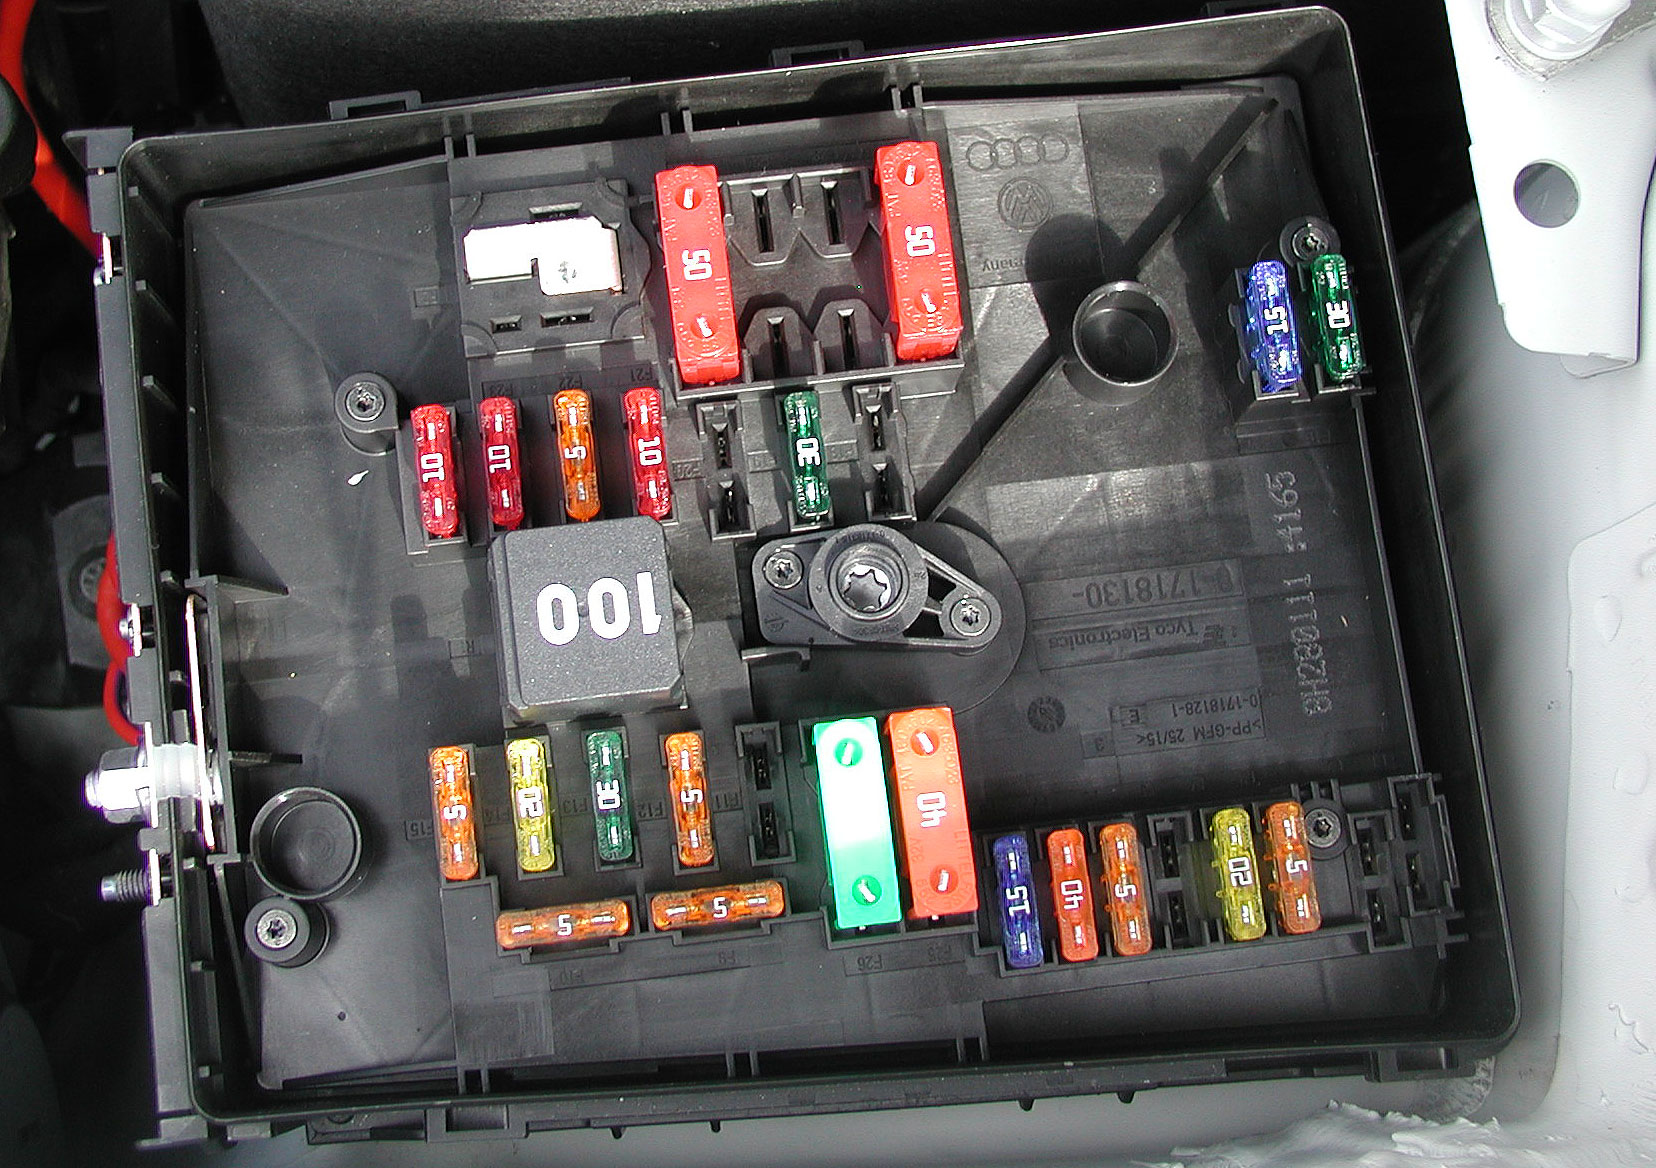 Vw Tdi Fuse Box Electronic Wiring Diagrams 2002 Volkswagen Jetta 2011 Golf Picture Please Tdiclub Forums 2000 Beetle Location